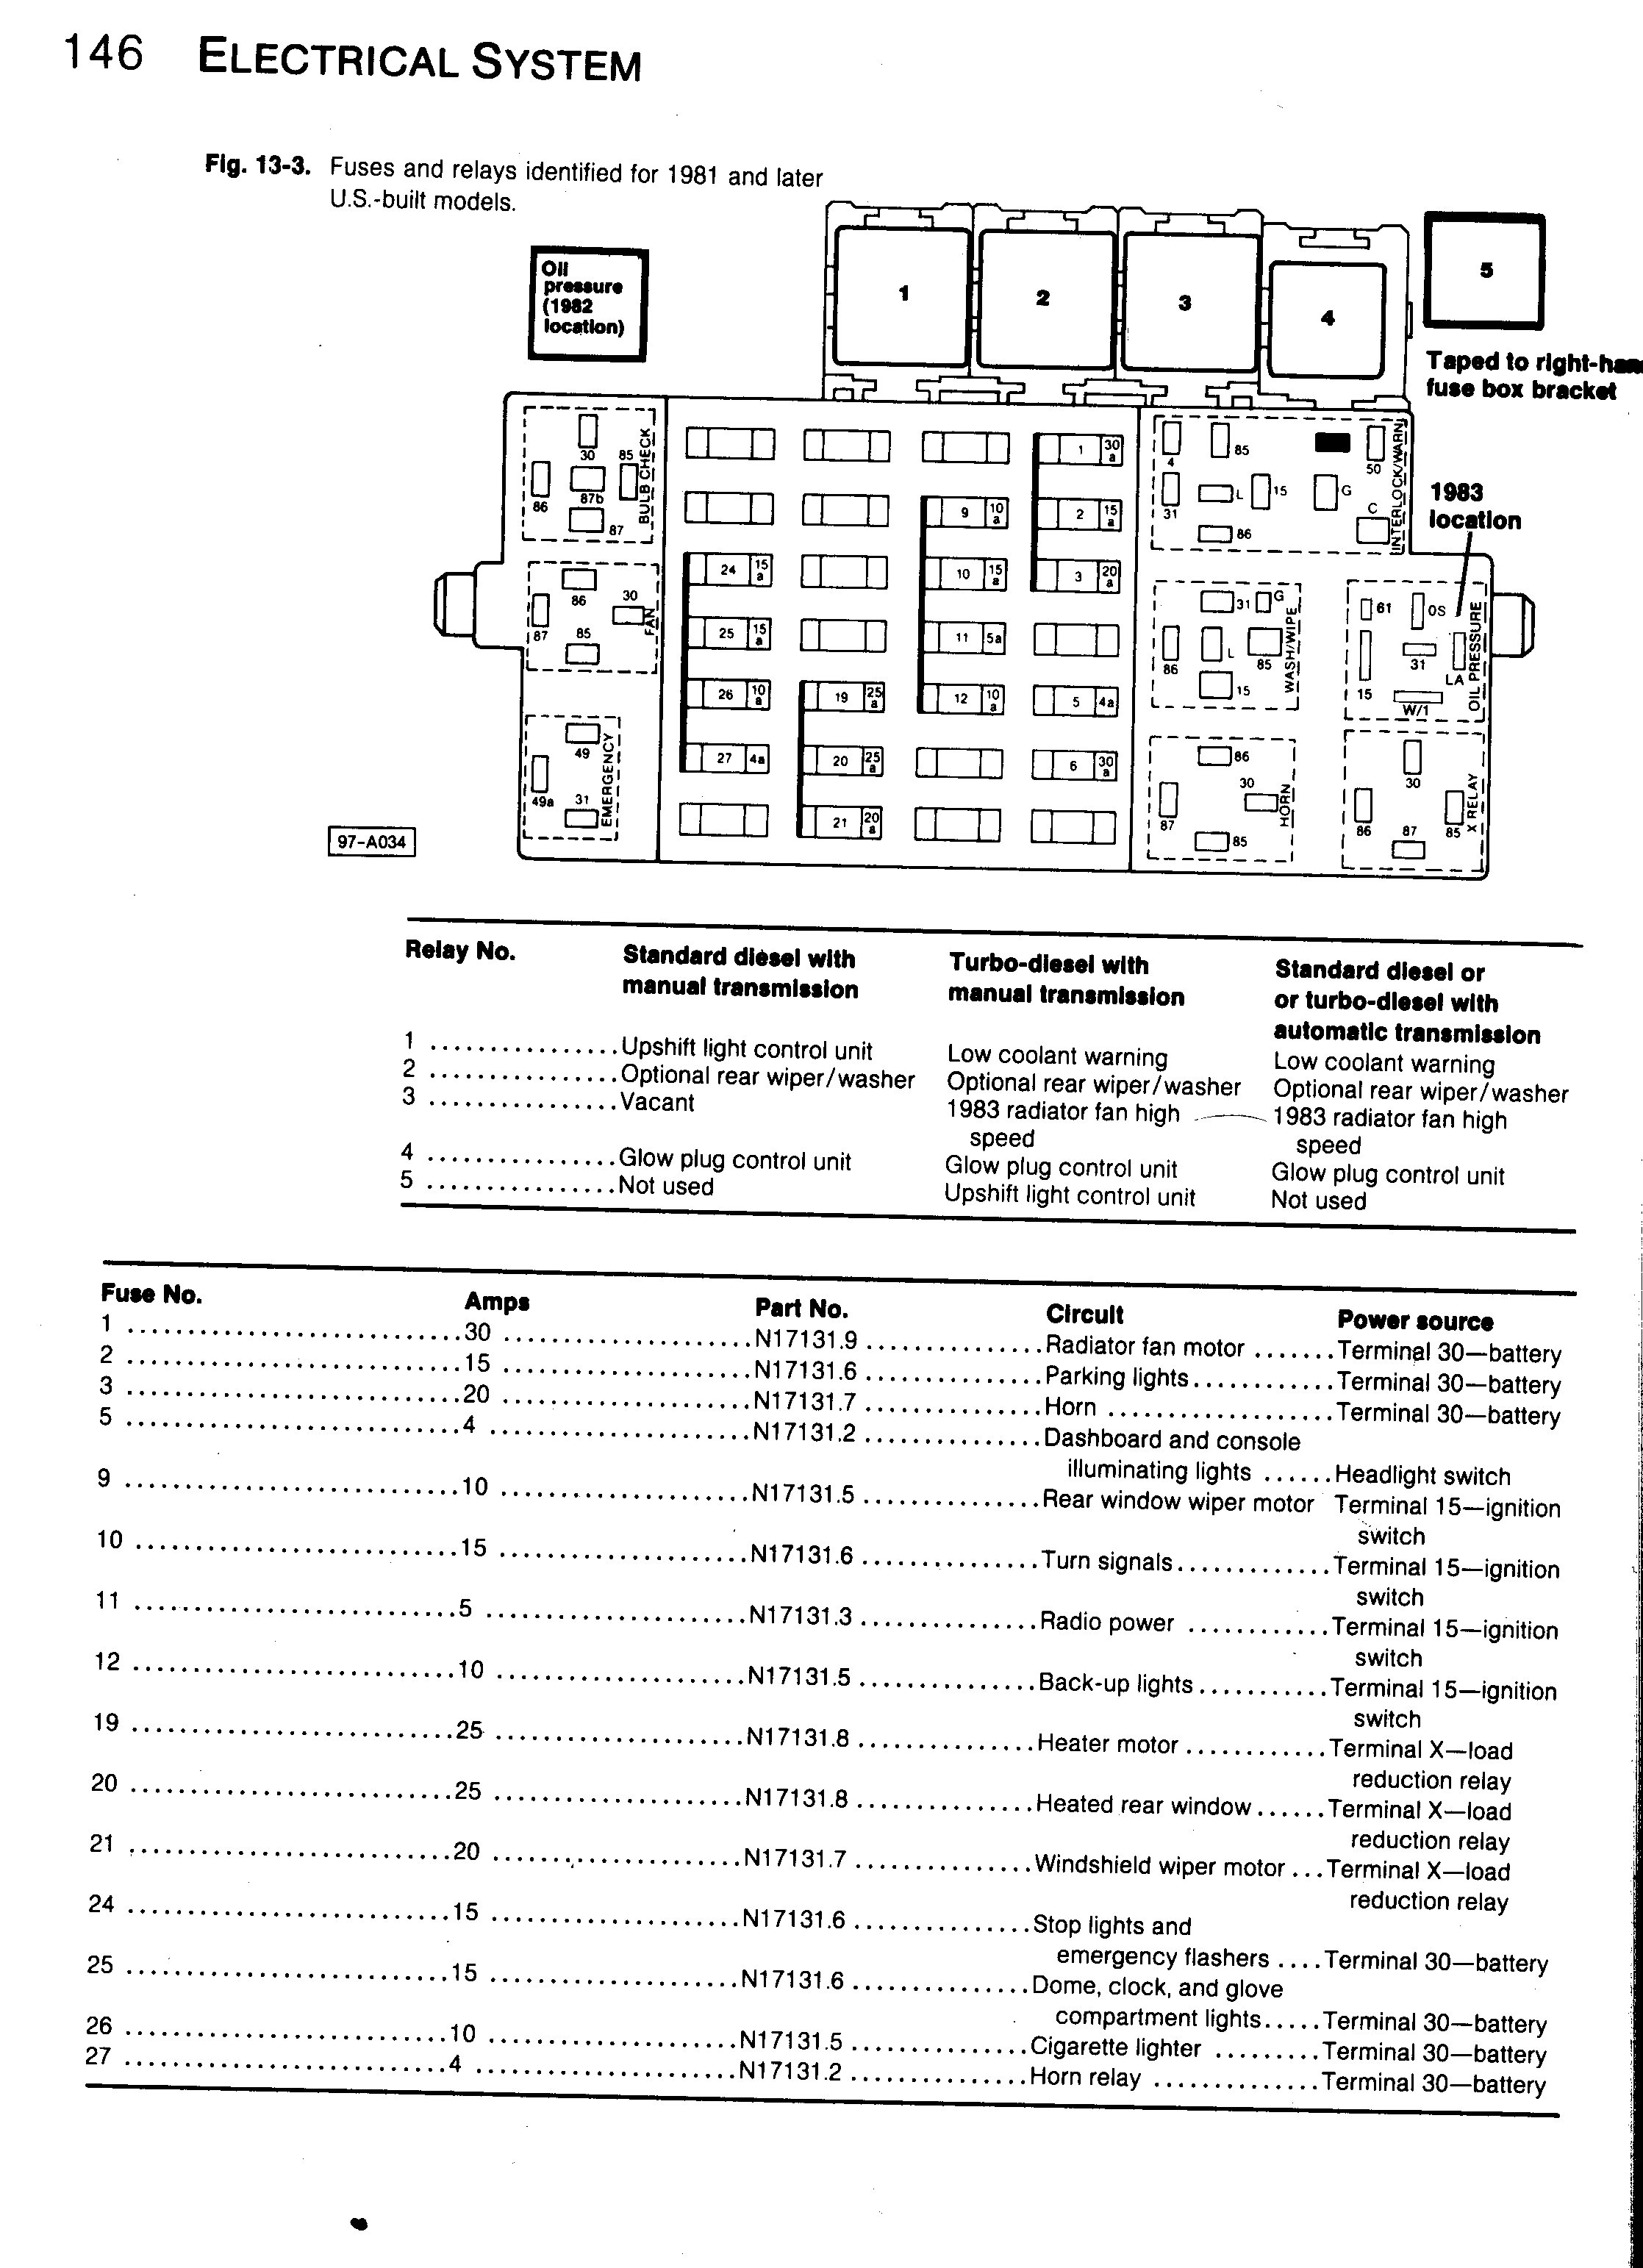 Volkswagen Eos Electrical Diagram on 1997 vw eurovan wiring diagram